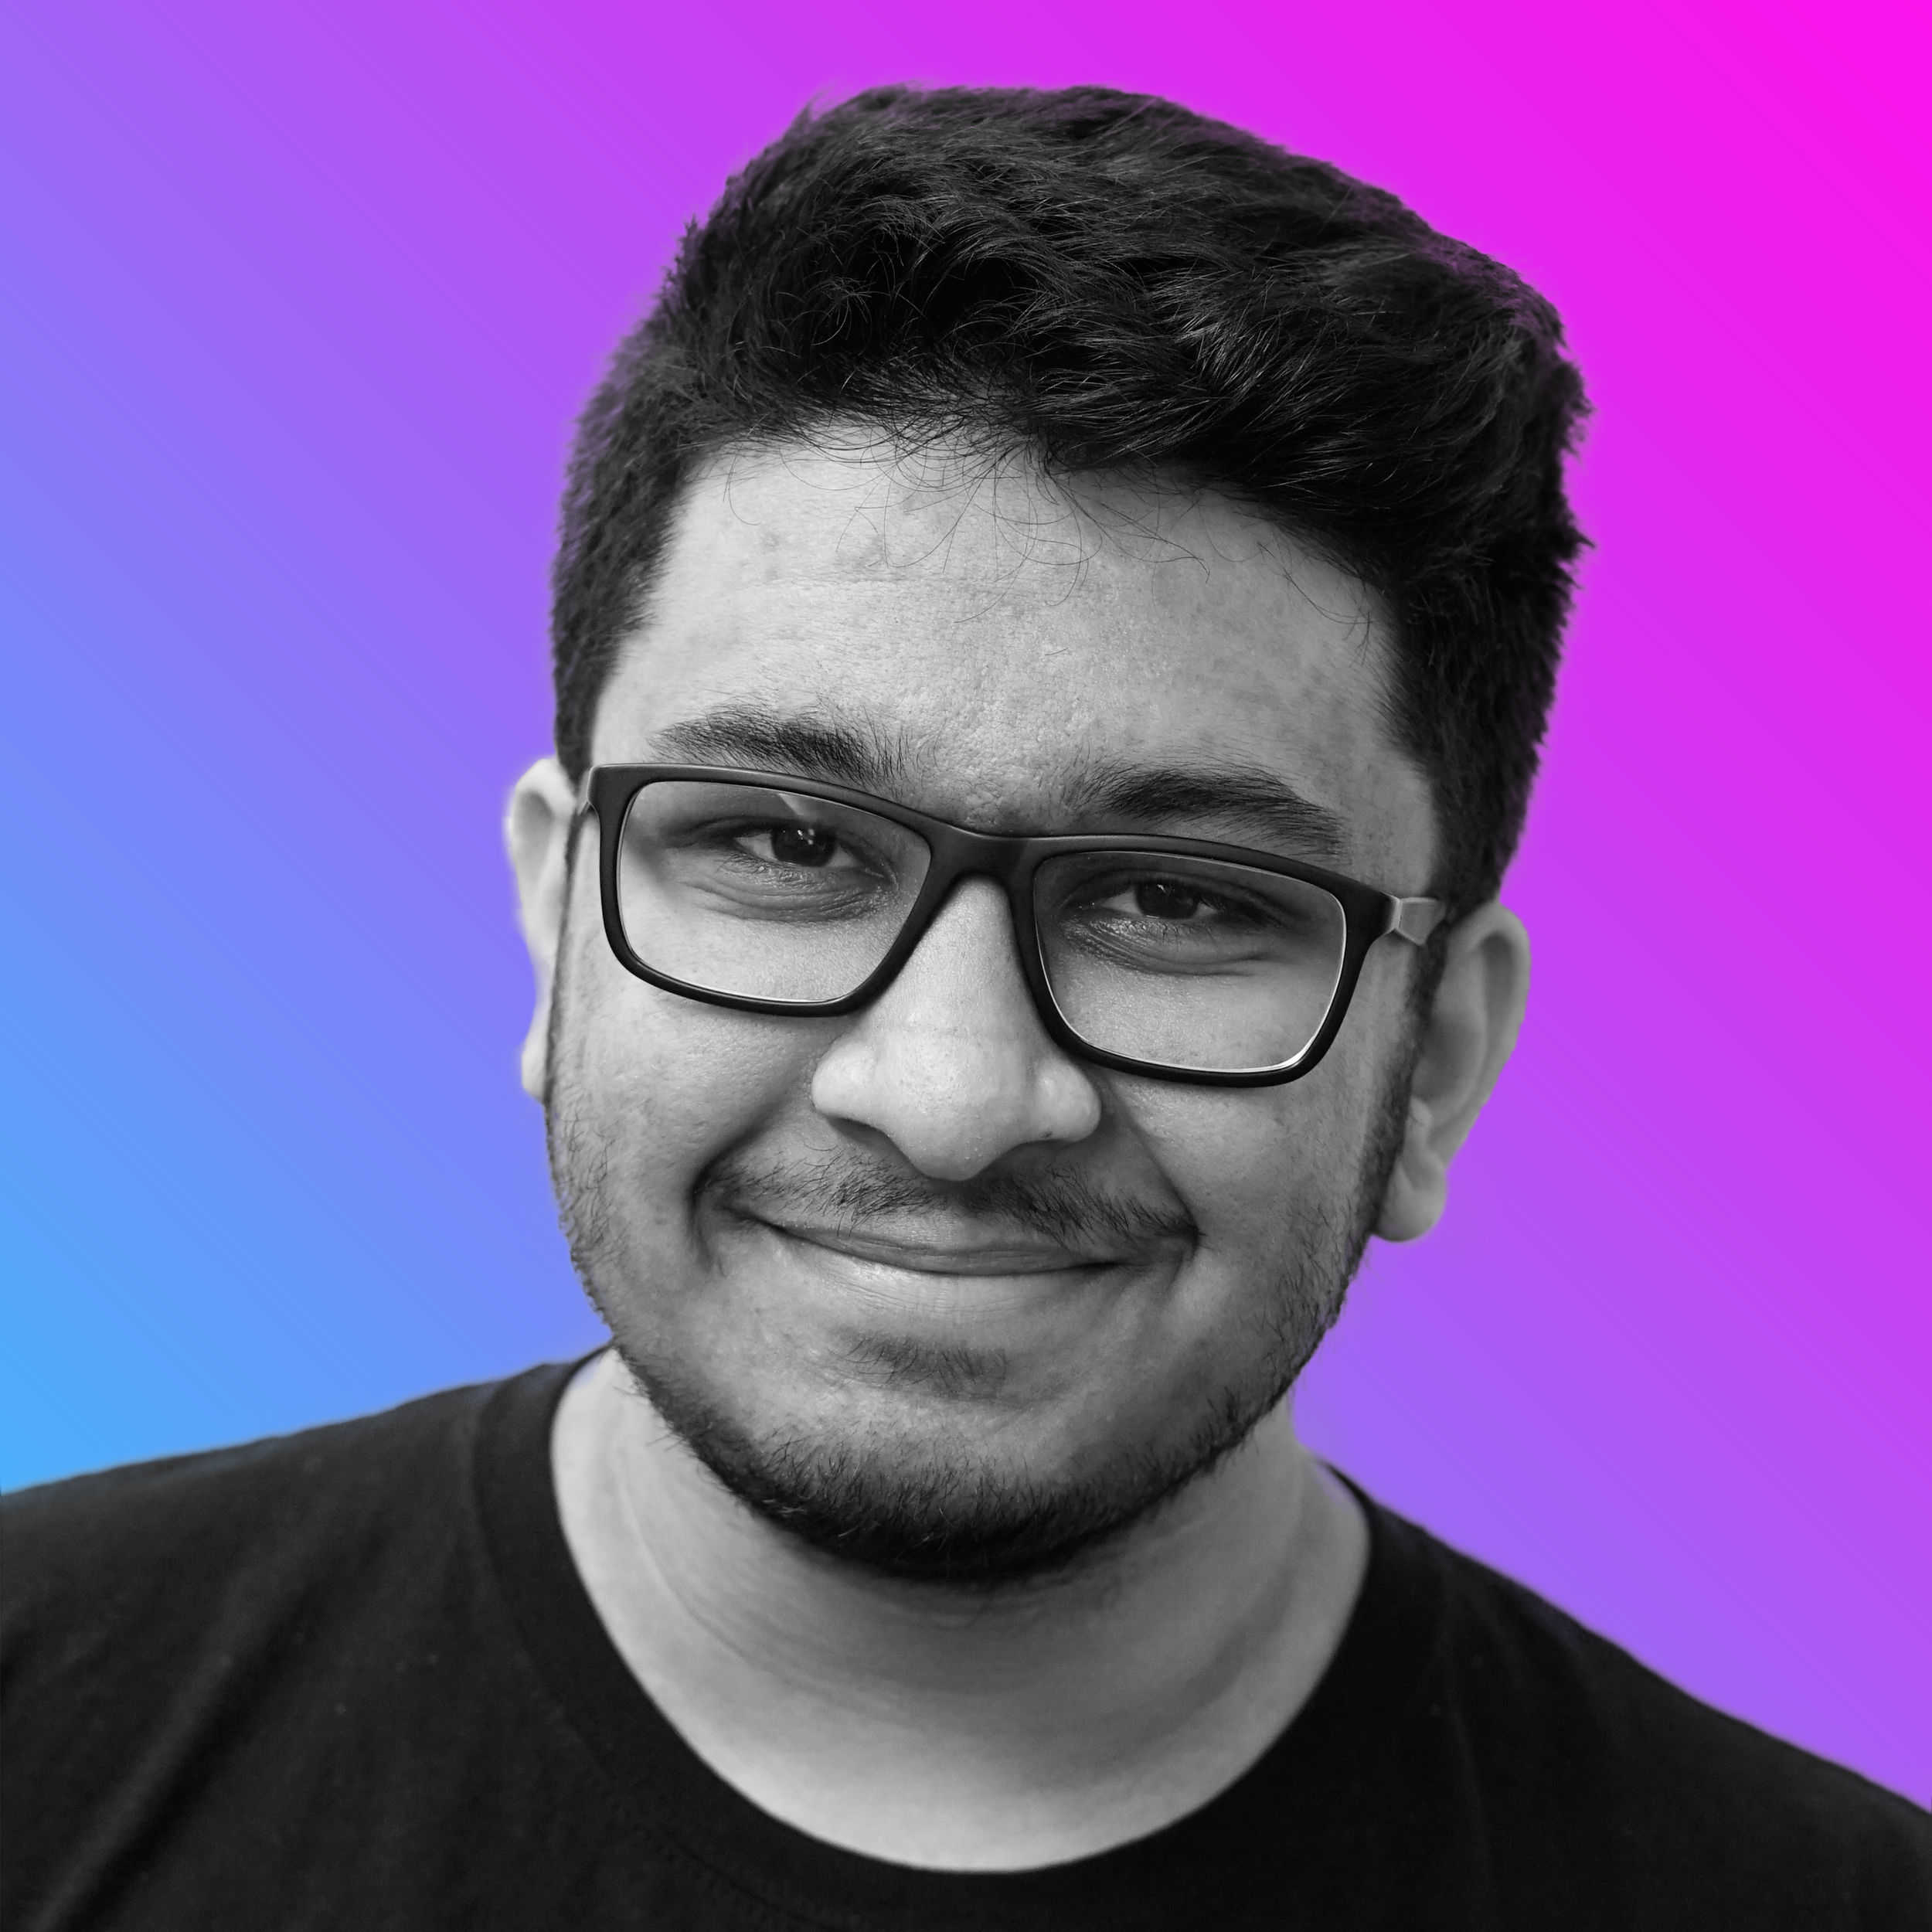 Hi, I'm Aaditya - Incoming Product and UX Designer @Microsoft. Industrial Design Senior @RISD. Previously @Microsoft and @Nuance